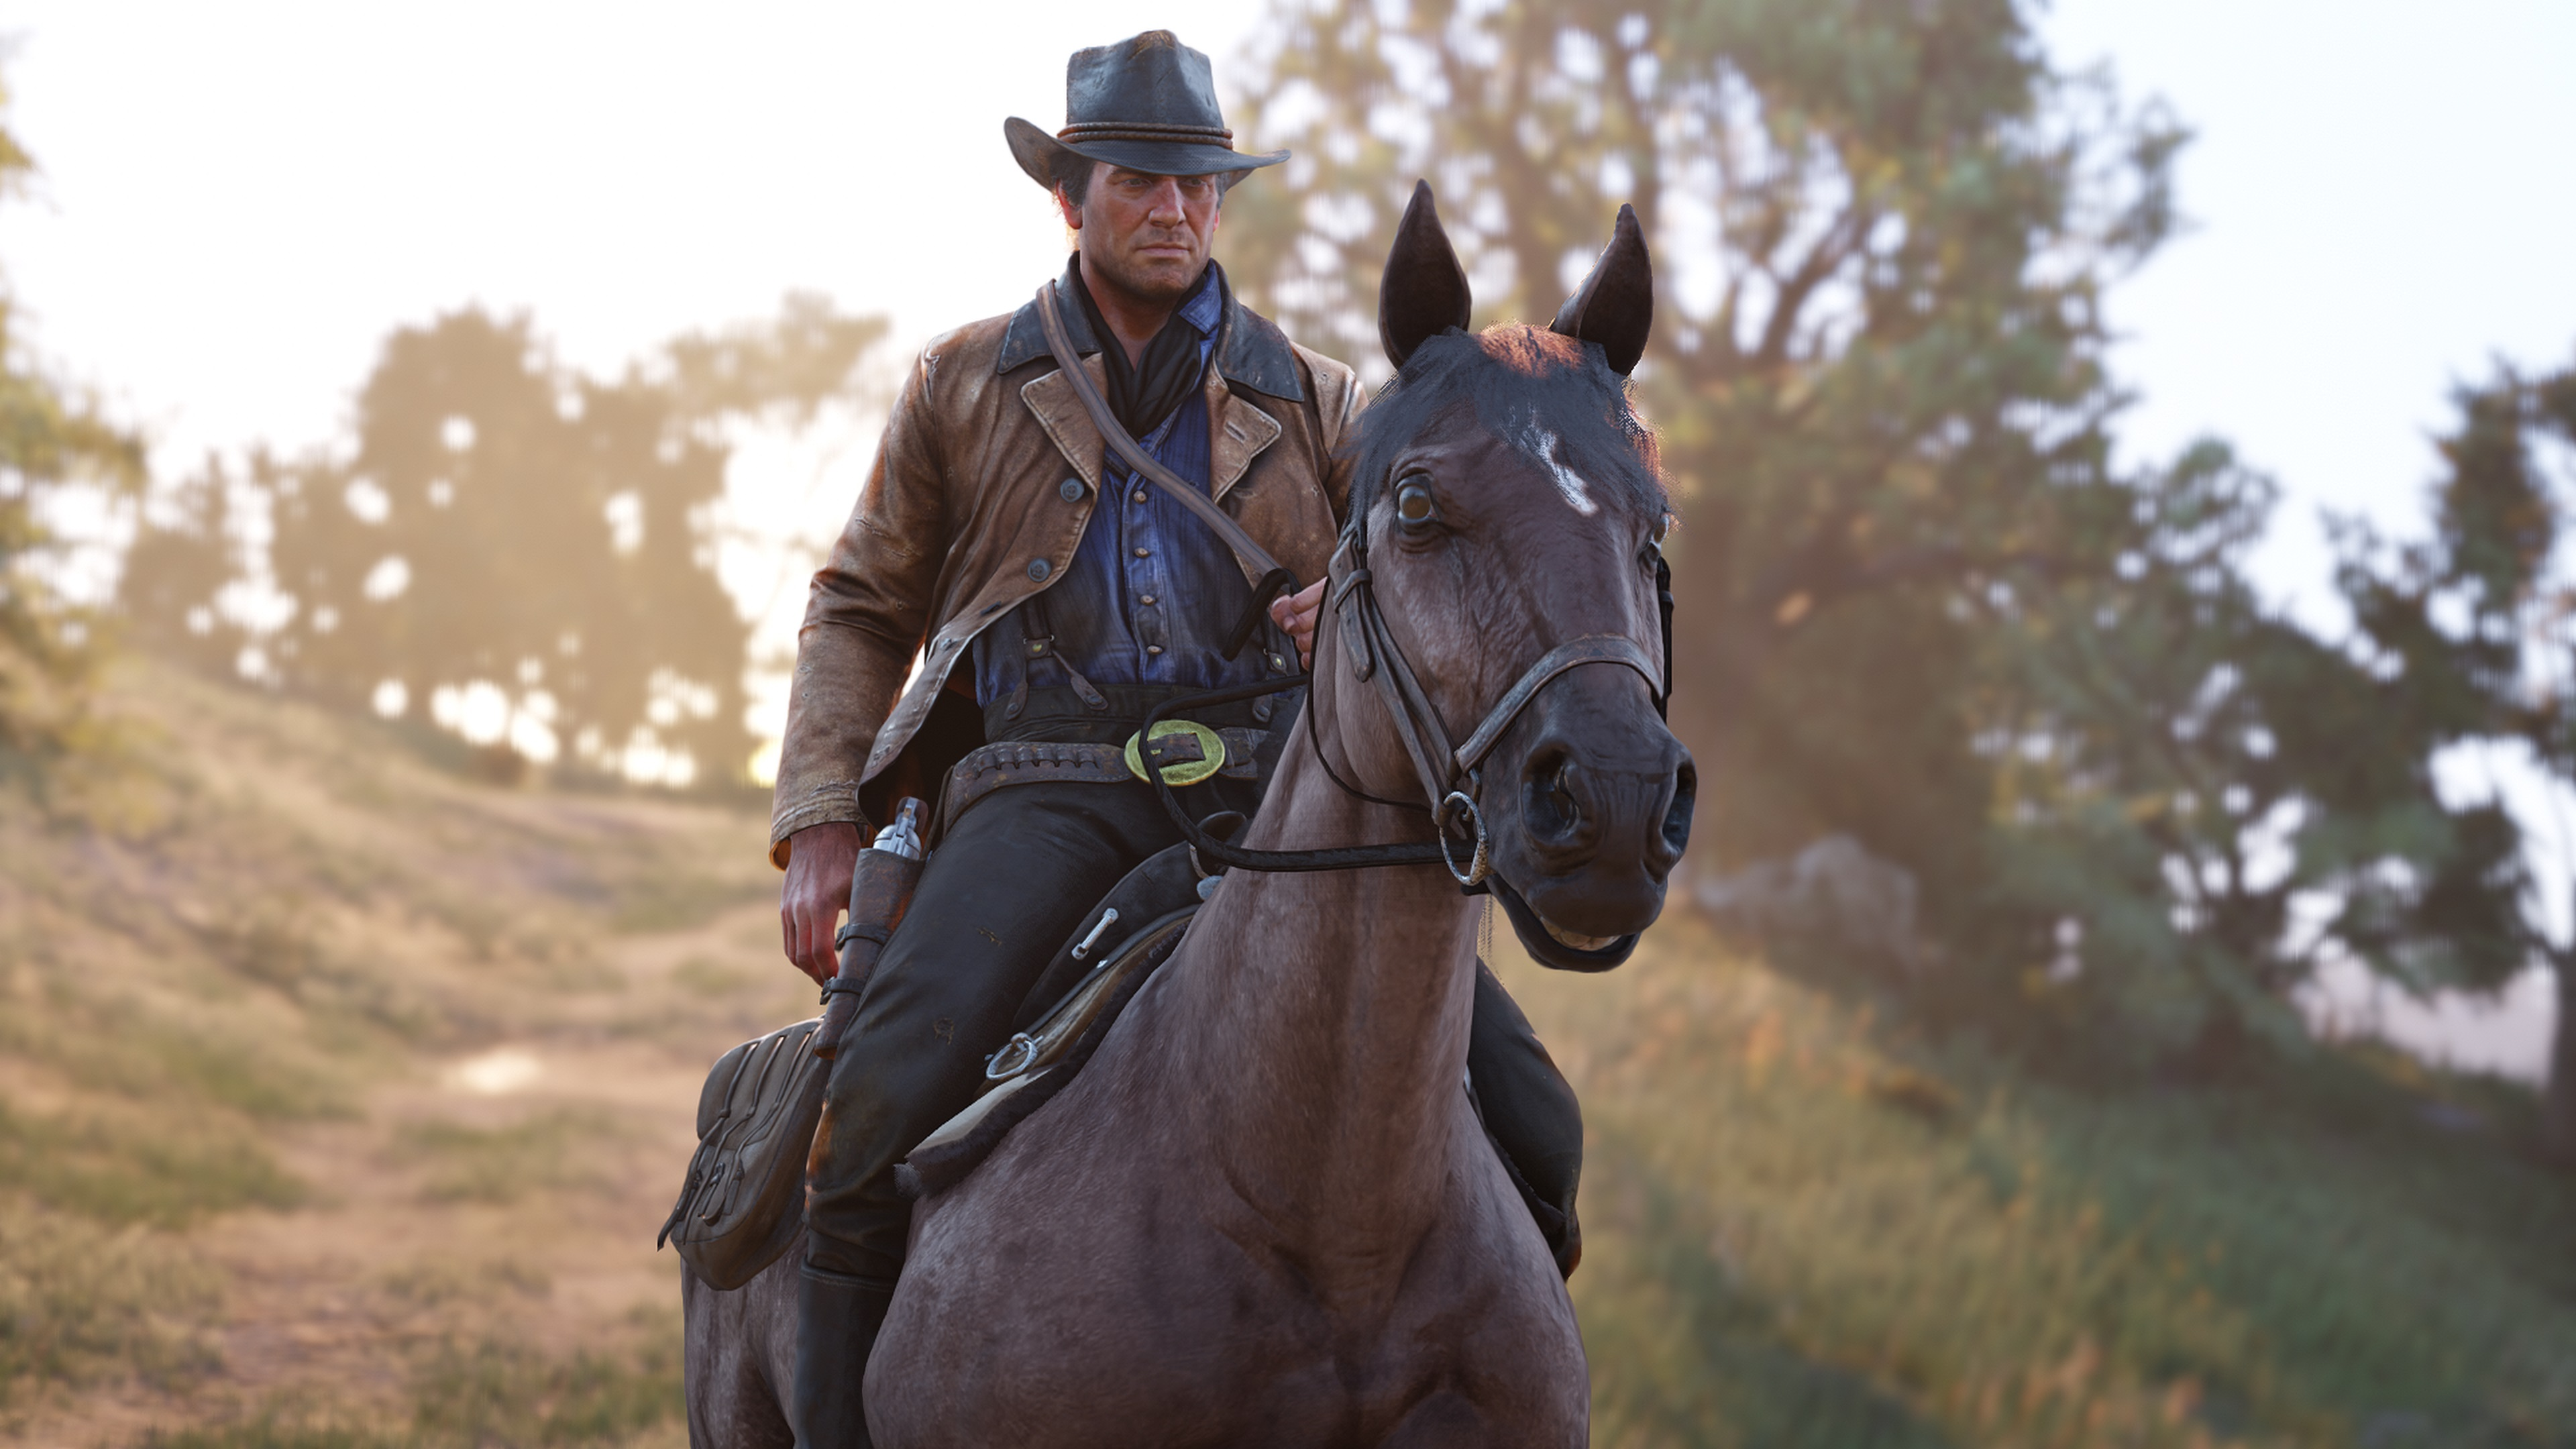 How to store items on your horse in Red Dead Redemption II